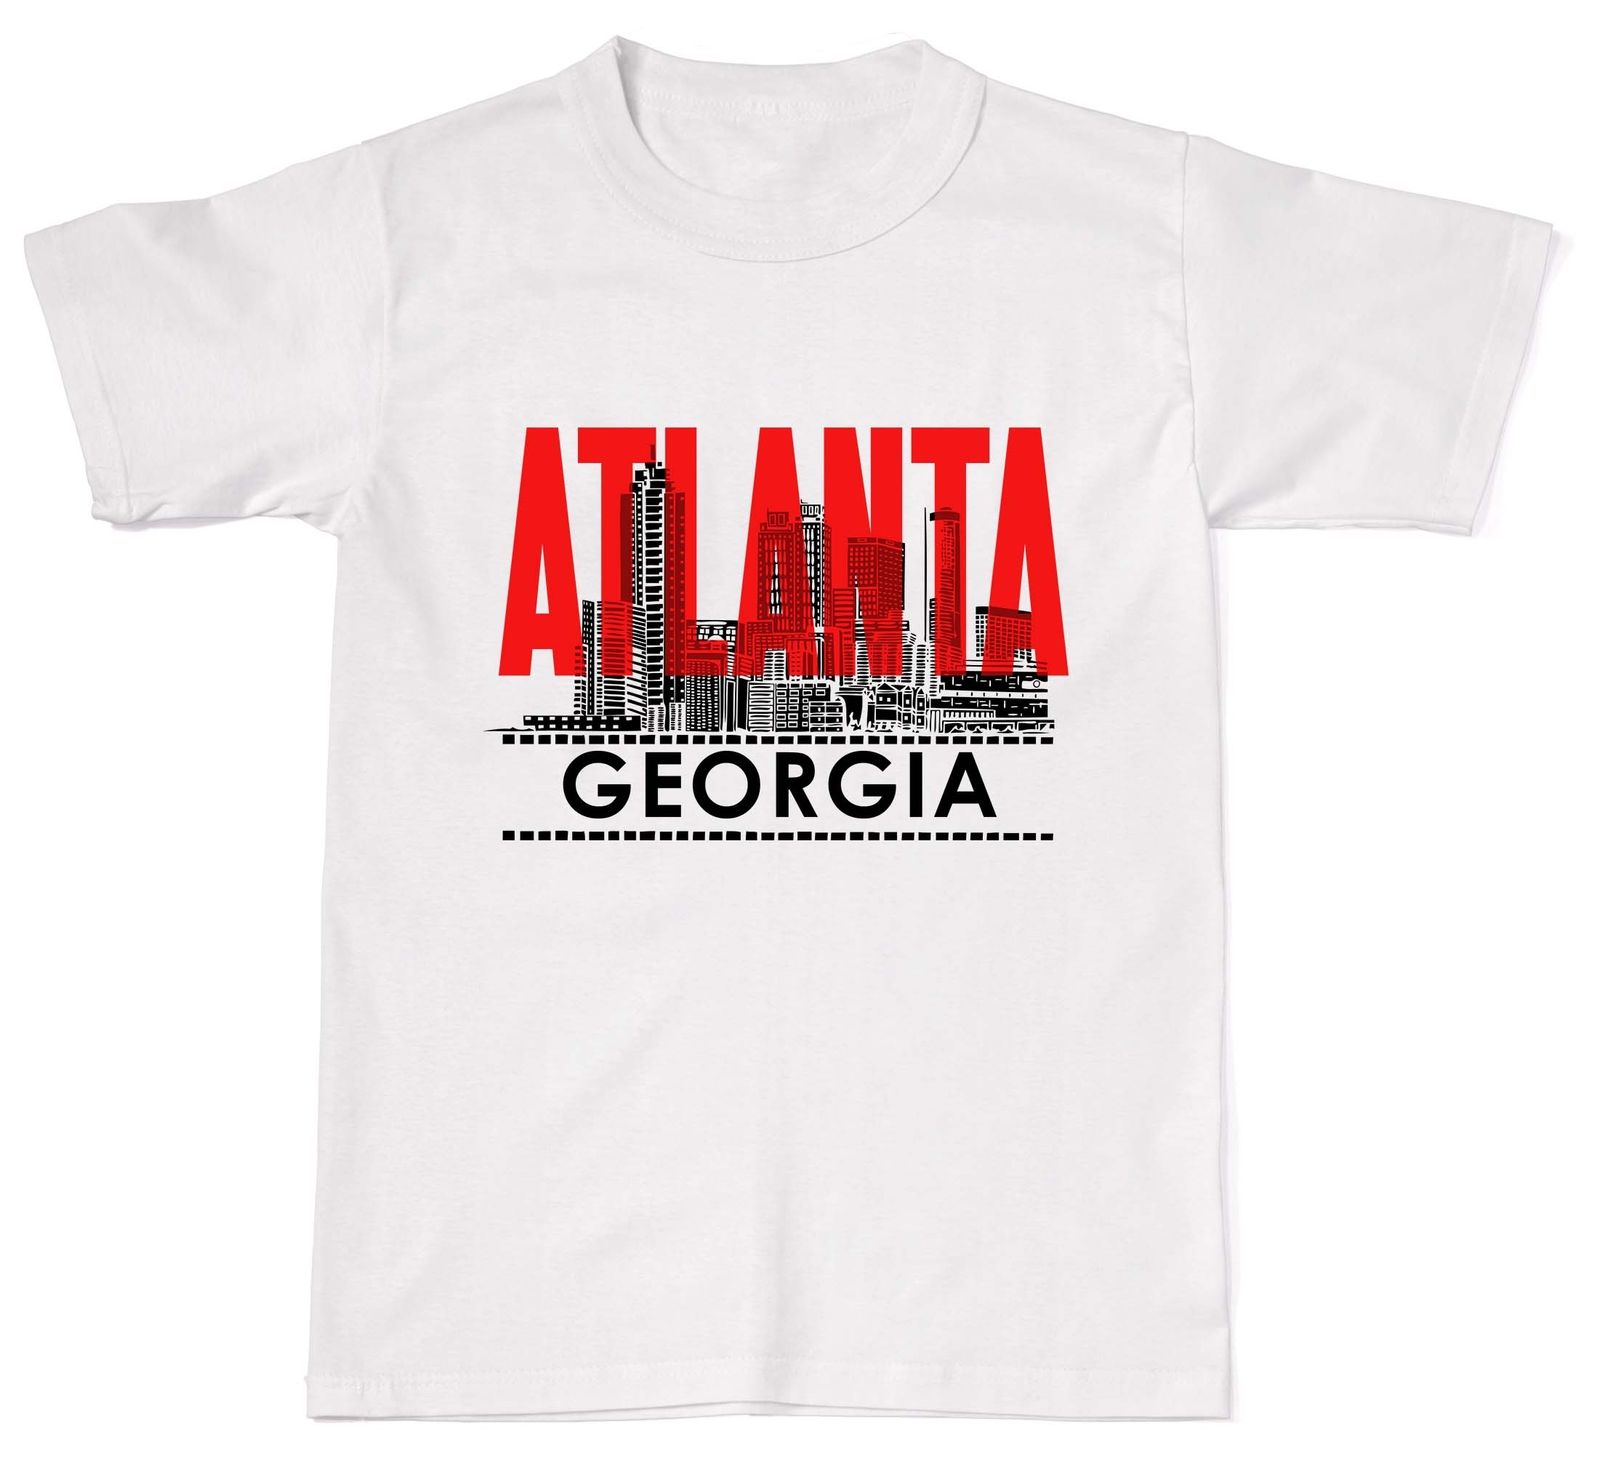 New Unisex T Shirt European Style In Soft Cotton Tees Atlanta Georgia Atl Usa America City Skyline T Shirts Online image